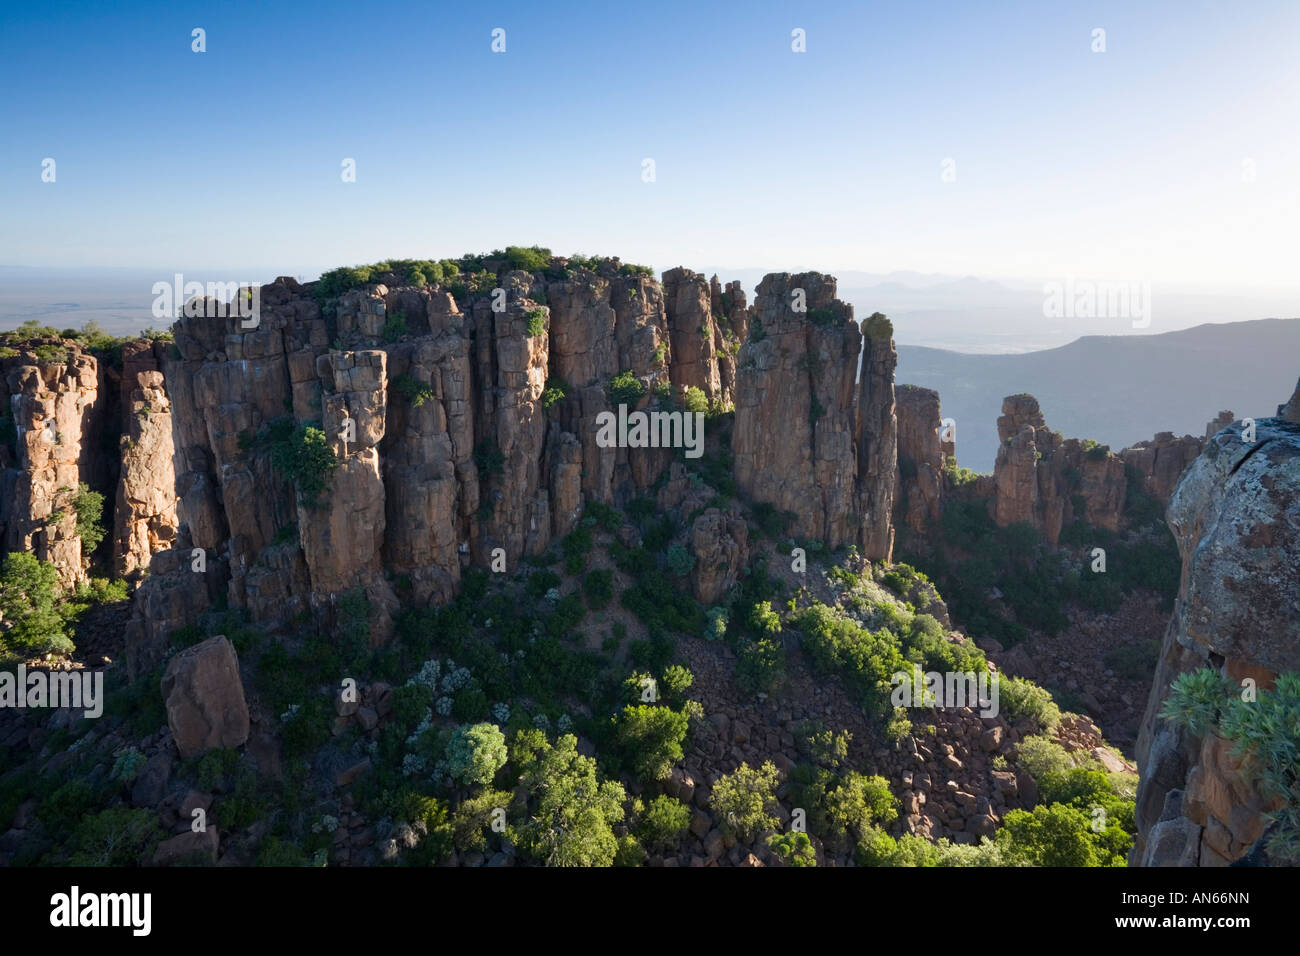 The Valley of Desolation Karoo Nature Reserve Graaff Reinet South Africa - Stock Image